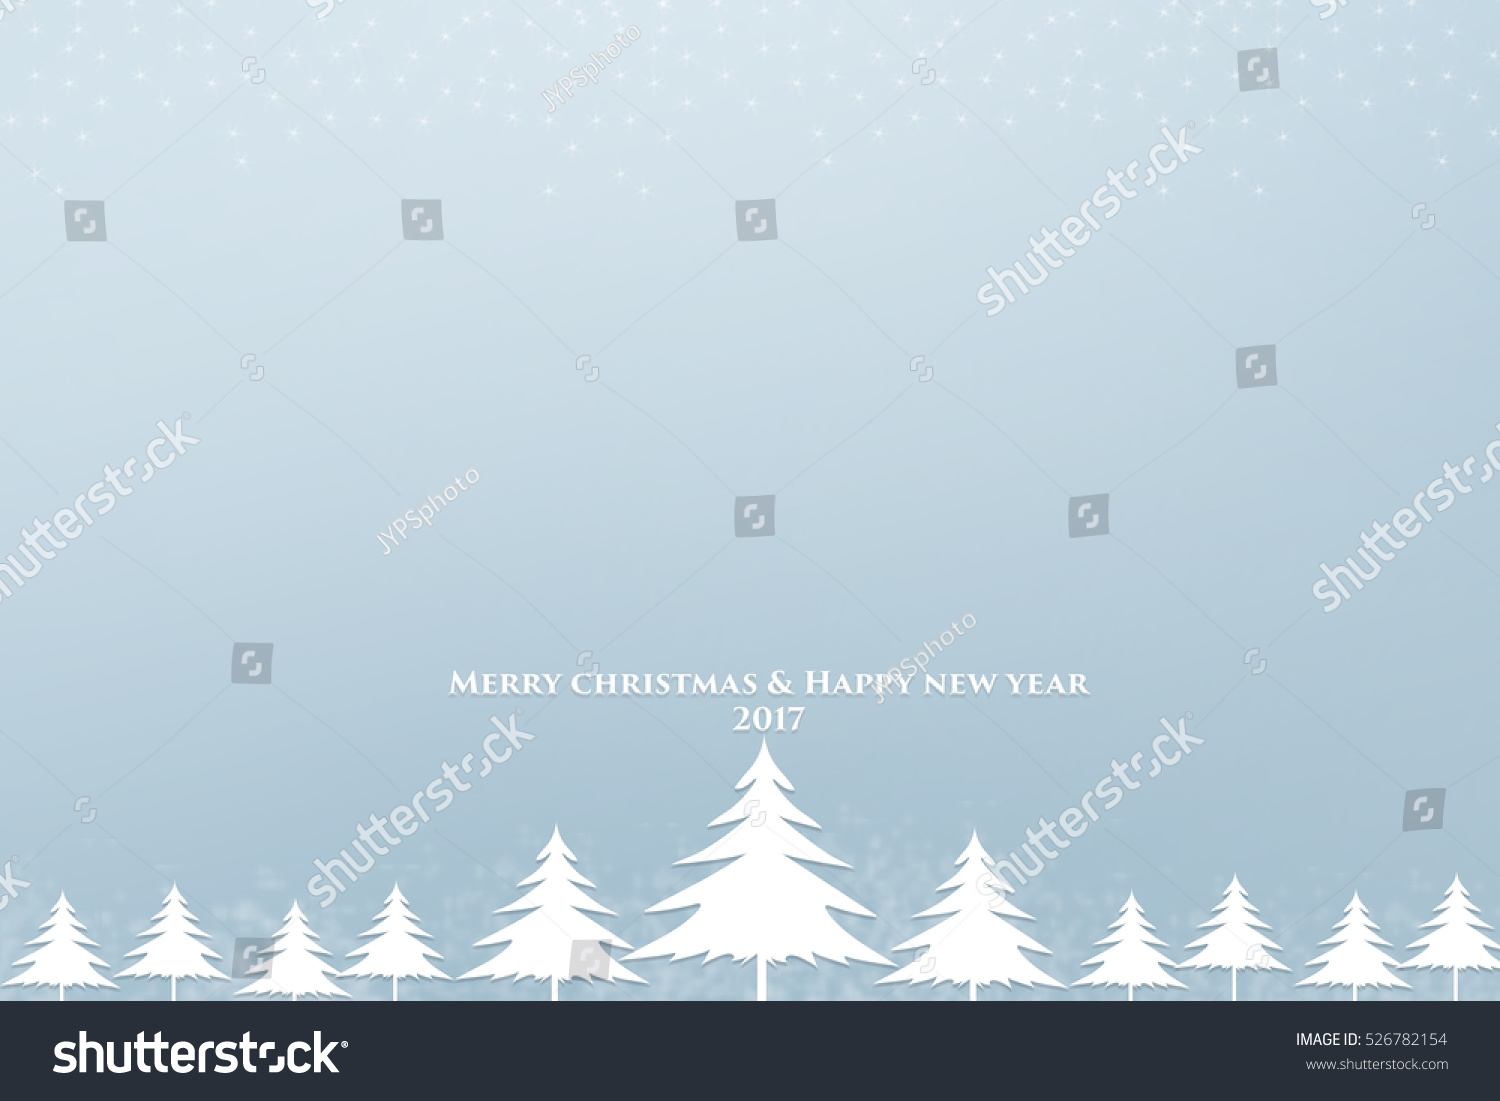 50 Beautiful Merry Christmas And Happy New Year Pictures: Merry Christmas And Happy New Year. Two Thousand Seventeen